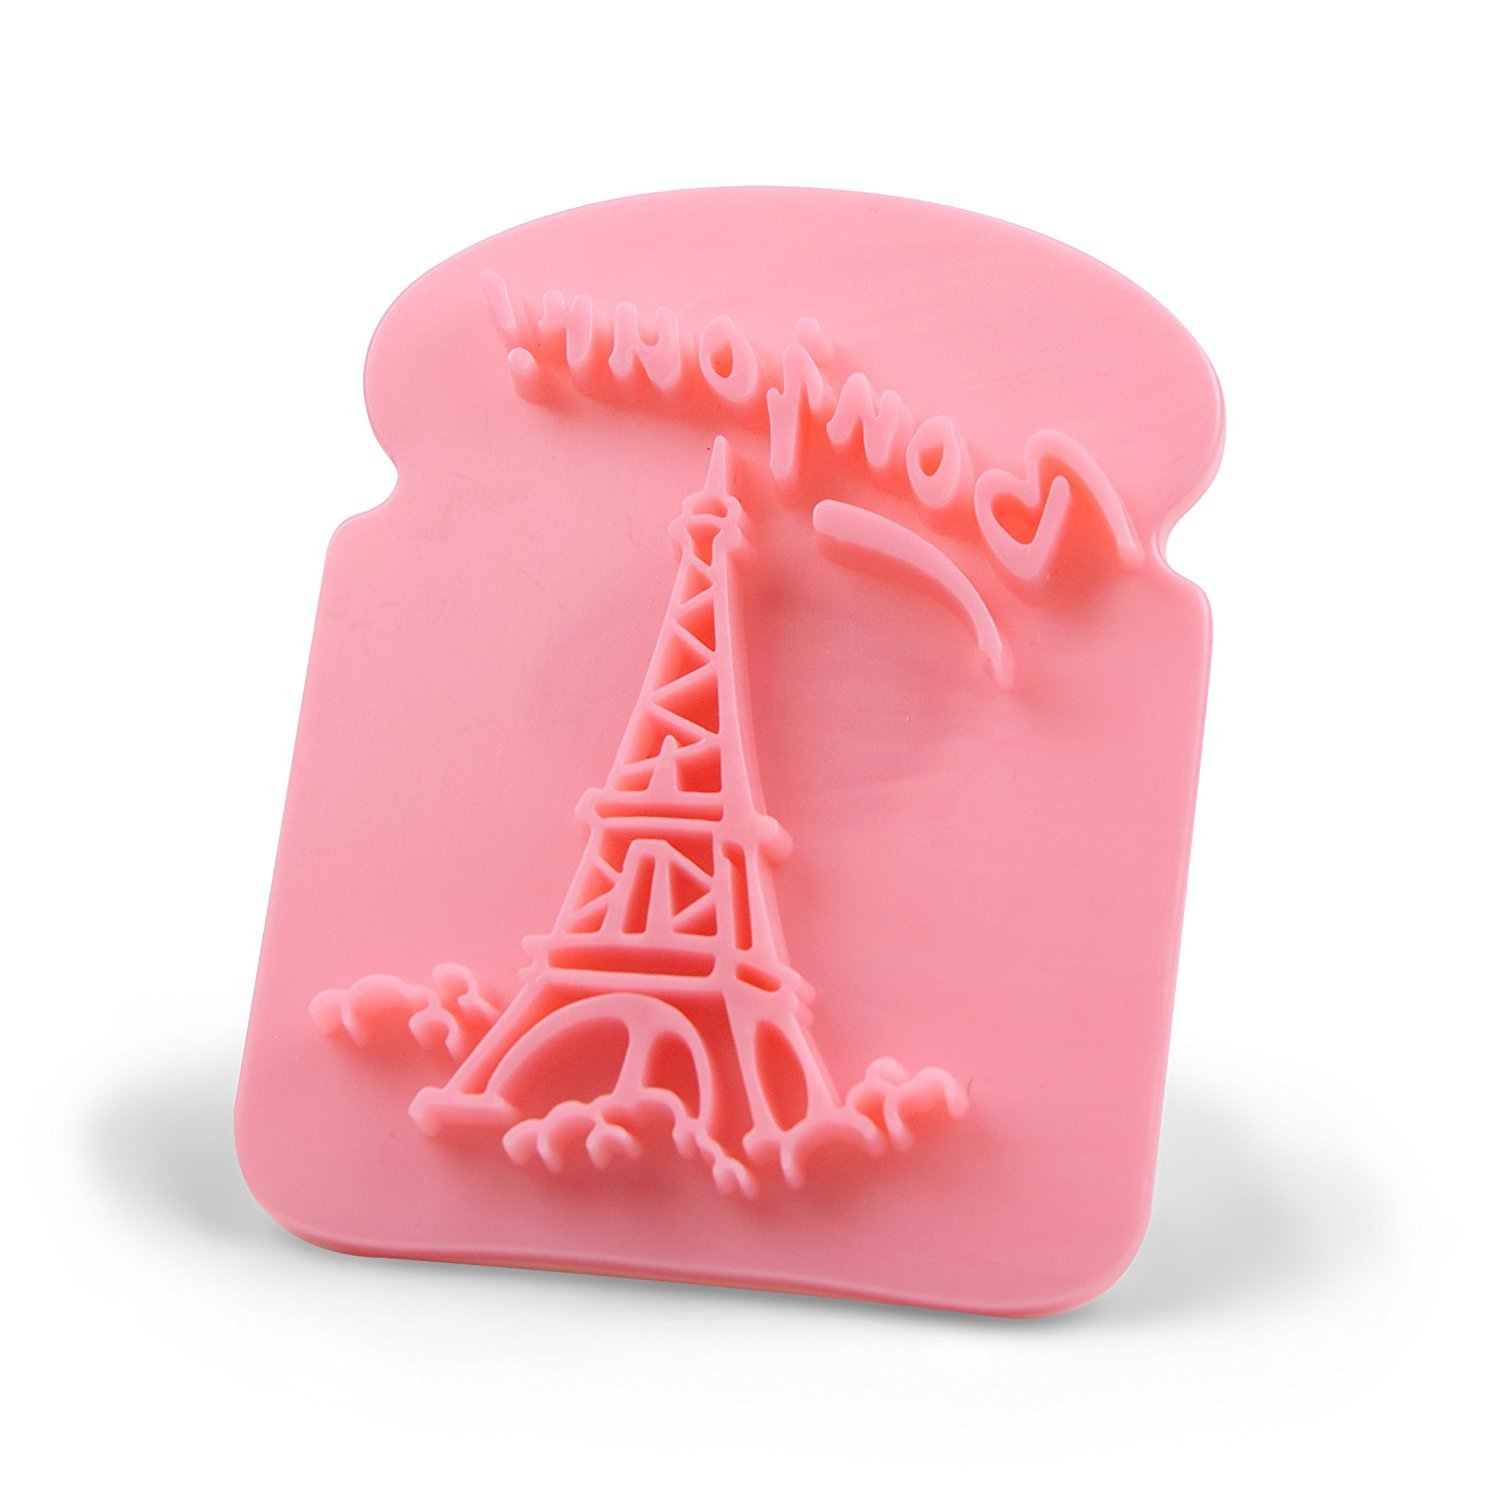 1 Height Bread Stamper TRES Chic! 4 Width 4 Length HomeSource FTOAST5A3.8 French Toast!